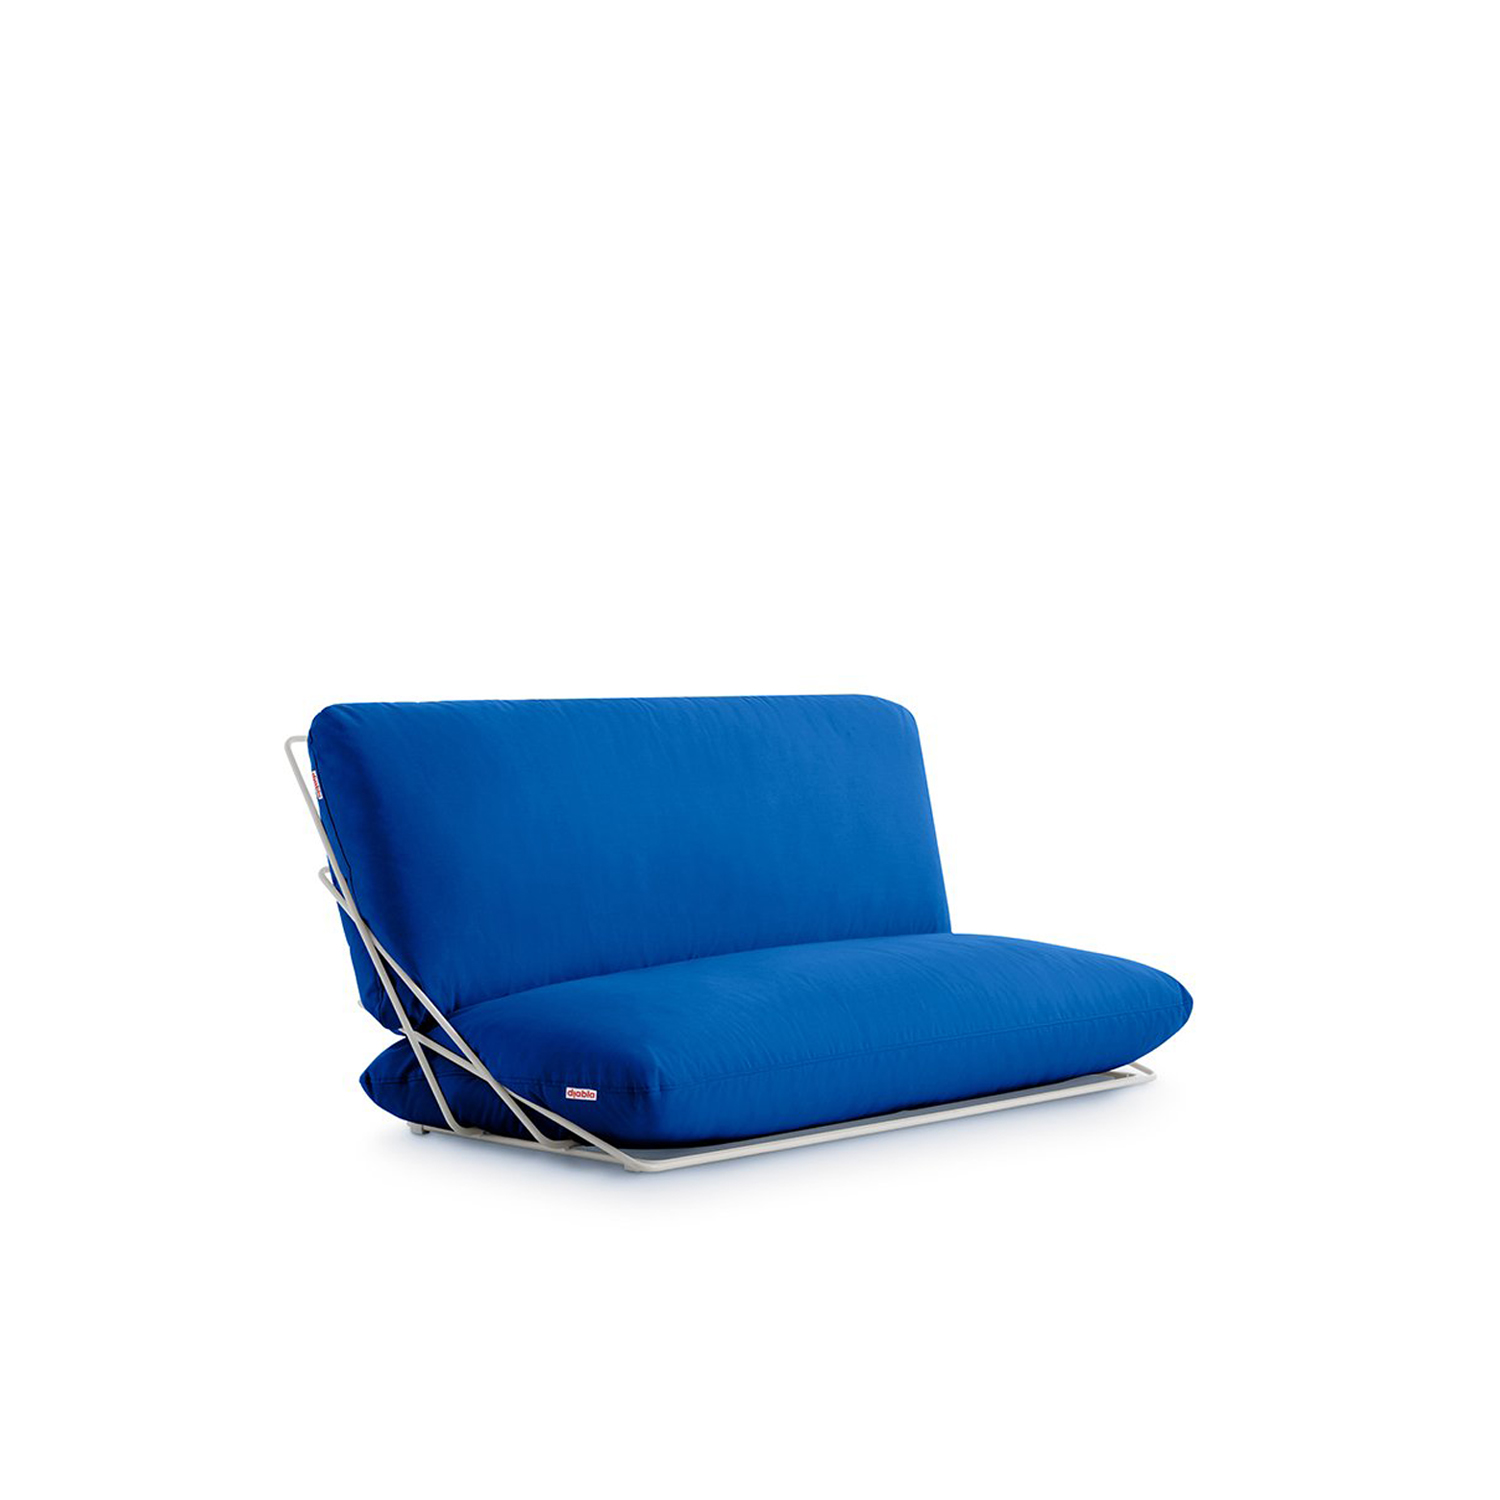 Valentina Sofa - <p>A seat with a casual and laid-back yet elegant and colourful character. The most genuine expression of Diabla's style. This is the the two-seater sofa in the Valentina Outdoor collection, an informal piece with a particularly seductive style. Its creator, Alejandra Gandía-Blasco Lloret, decided to design a sofa using just two cushions and keeping other elements to the minimum. Its floor-level design allows two people to sprawl on it.</p> <p>To stop the cushions from slipping and coming apart, they are fastened together with a zip that is hidden from view. They're both attached to the lightweight, almost invisible structure of steel rods by another zip, an important feature of floor-level designs to keep the whole arrangement secure.<br /> The cushions are made from a special outdoor fabric and the covers can be removed. This means that they can be washed easily or that they can be changed for a set of covers in another of the colours in the Valentina Outdoor range.</p>  | Matter of Stuff